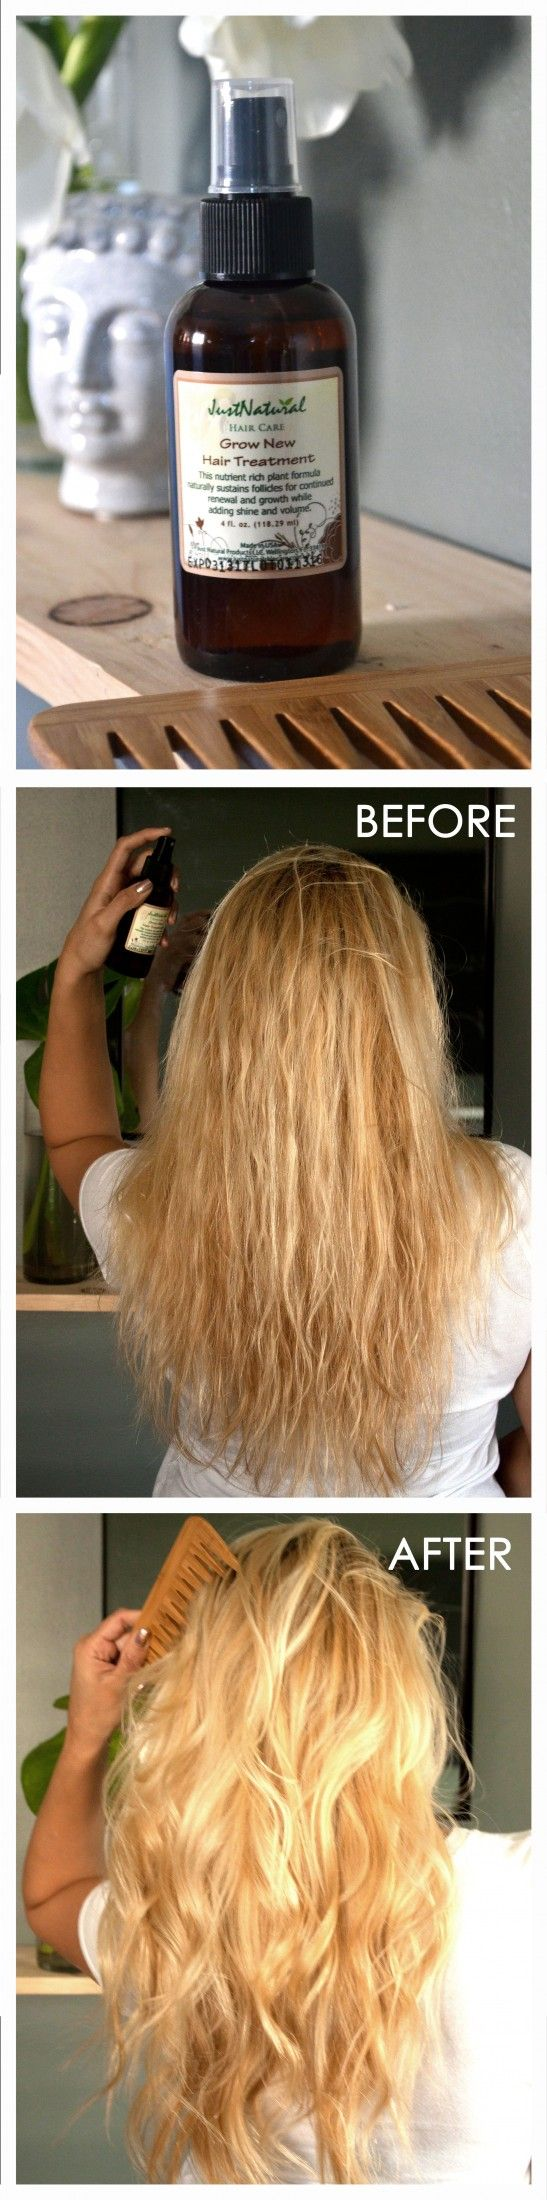 I grew fuller and healthy hair with Just Natural's Grow New Hair Treatment.